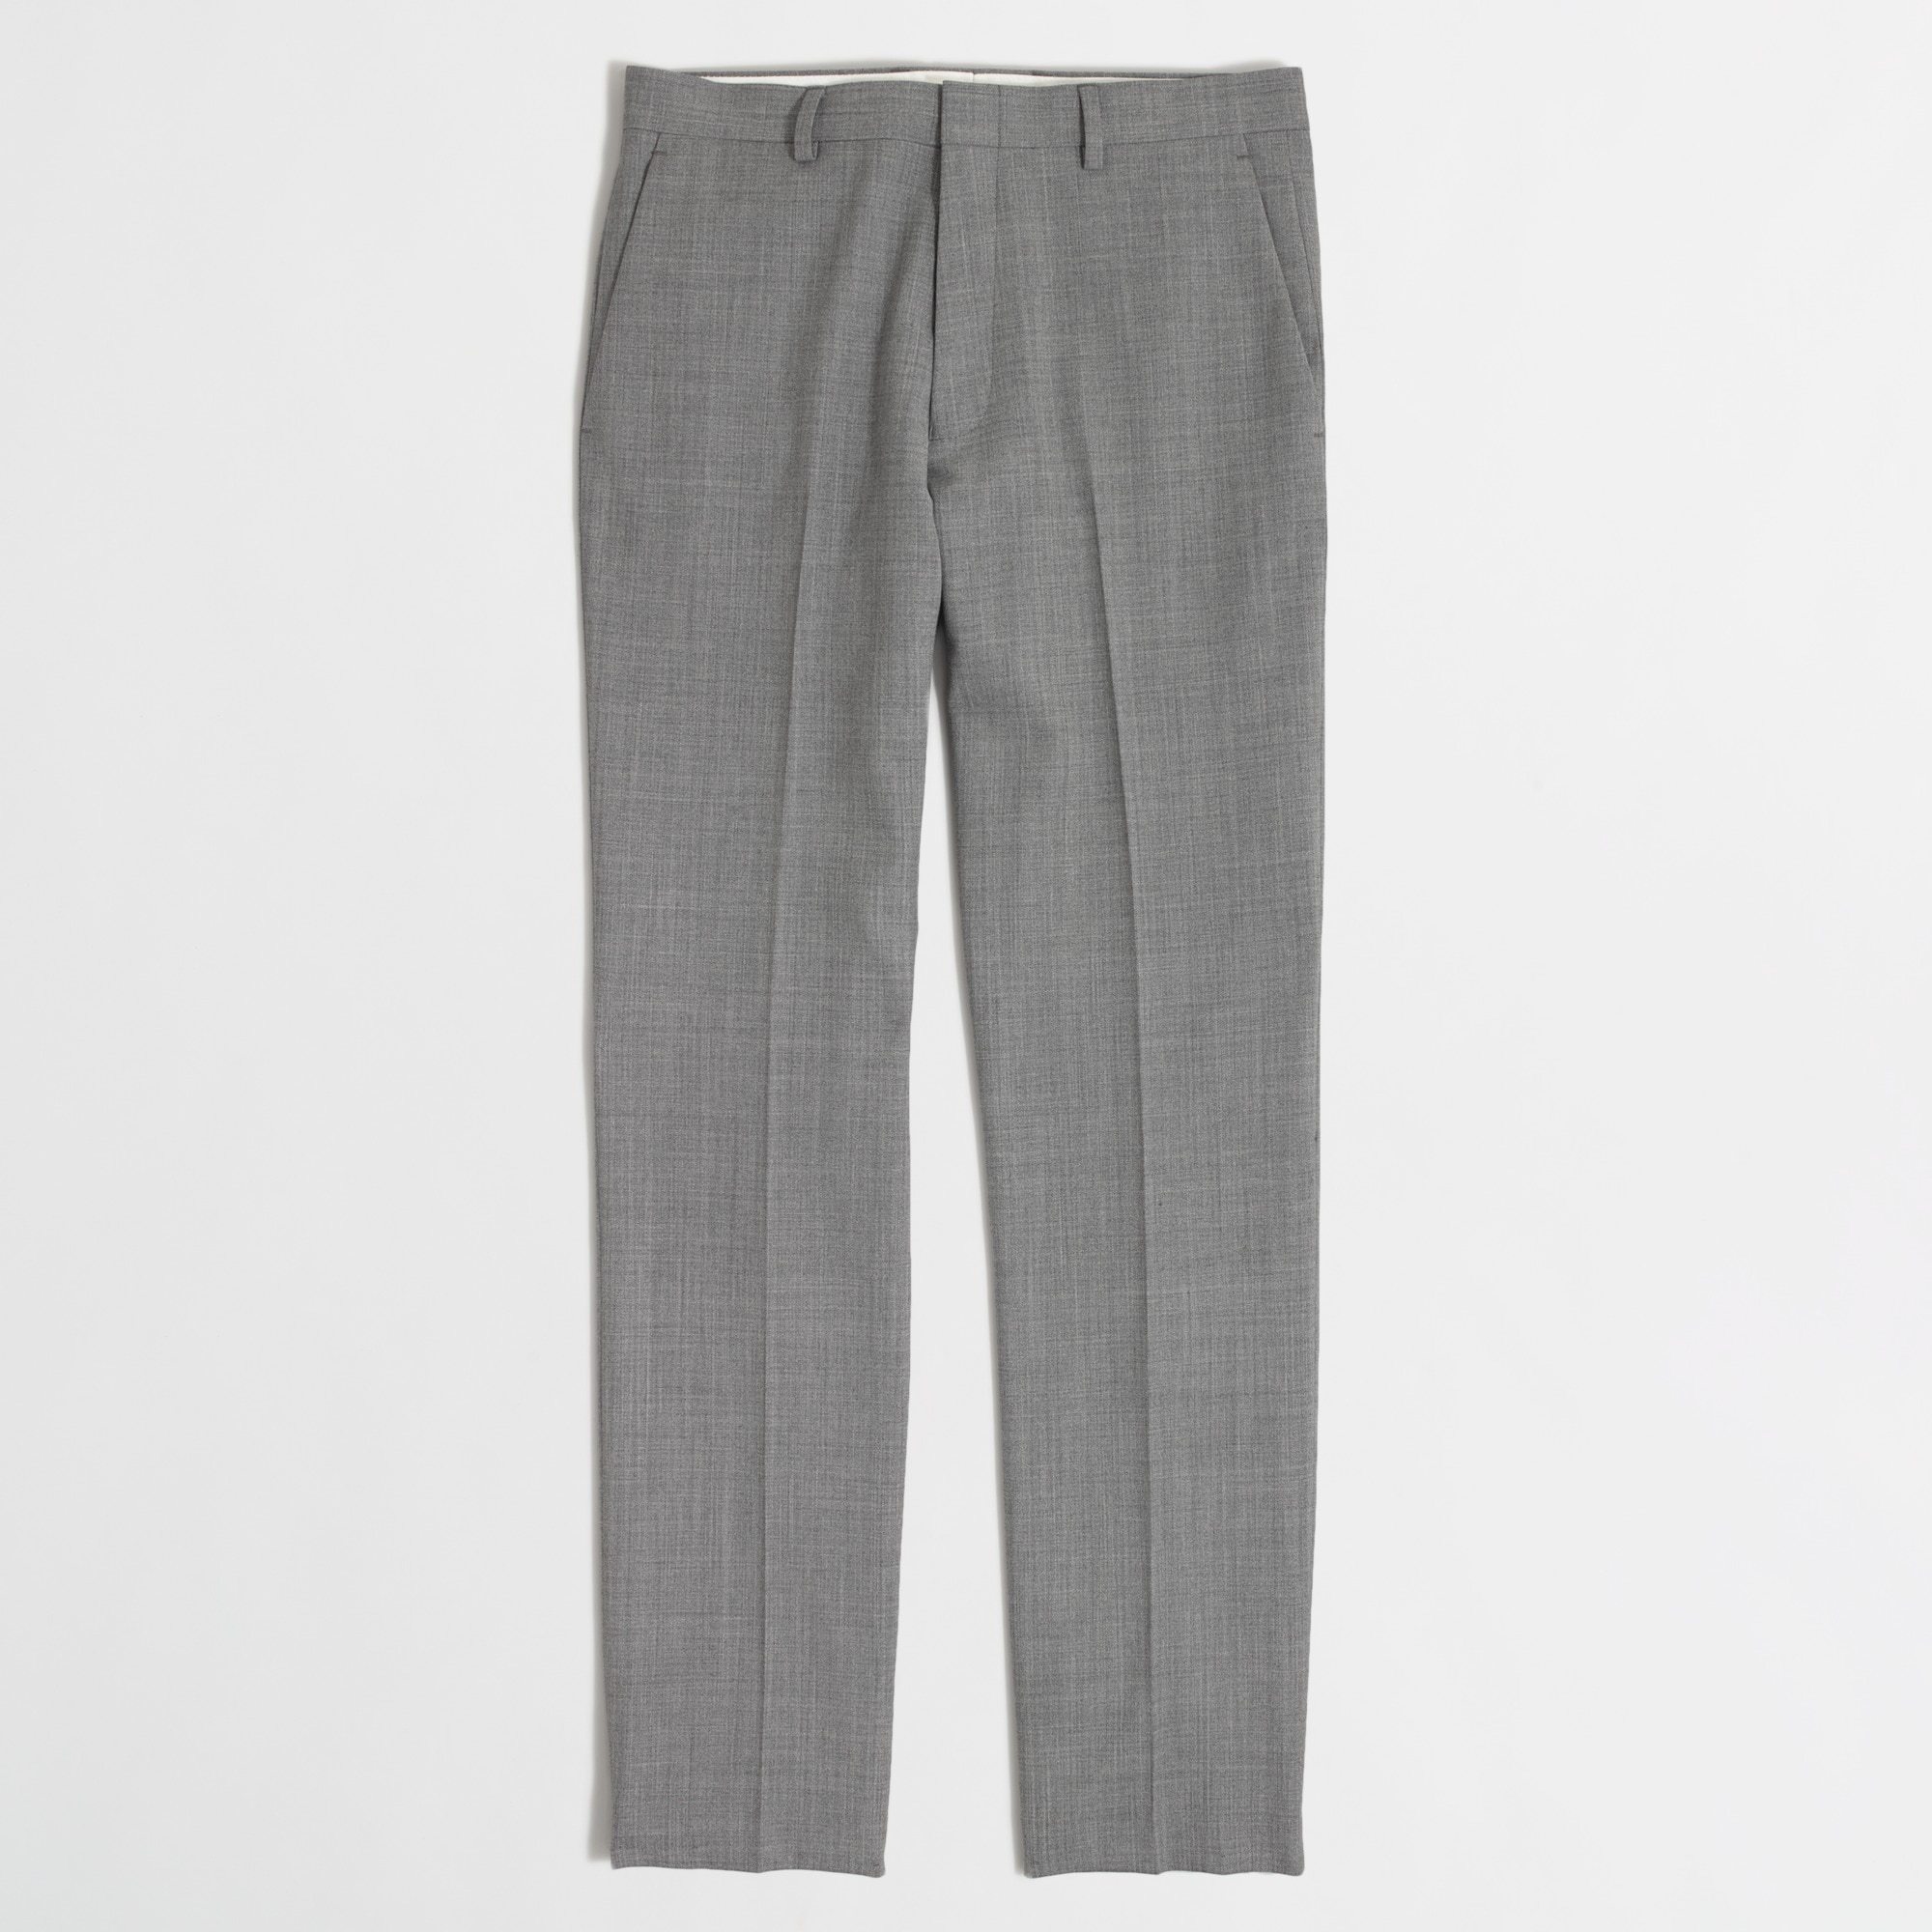 Image 2 for Classic-fit Thompson suit pant in Voyager wool